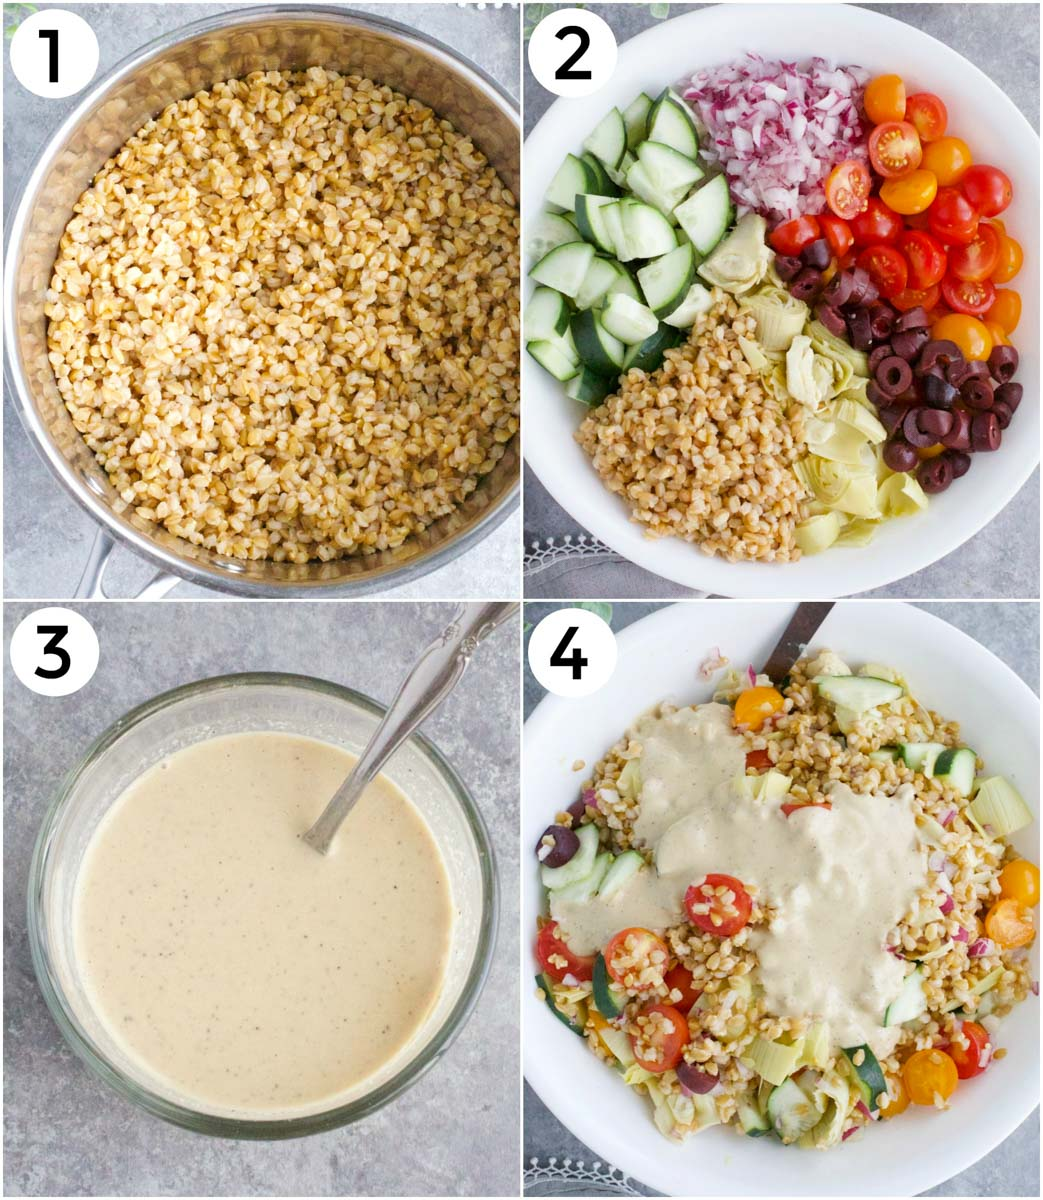 A photo collage showing how to make wheat berry salad in 4 easy steps.